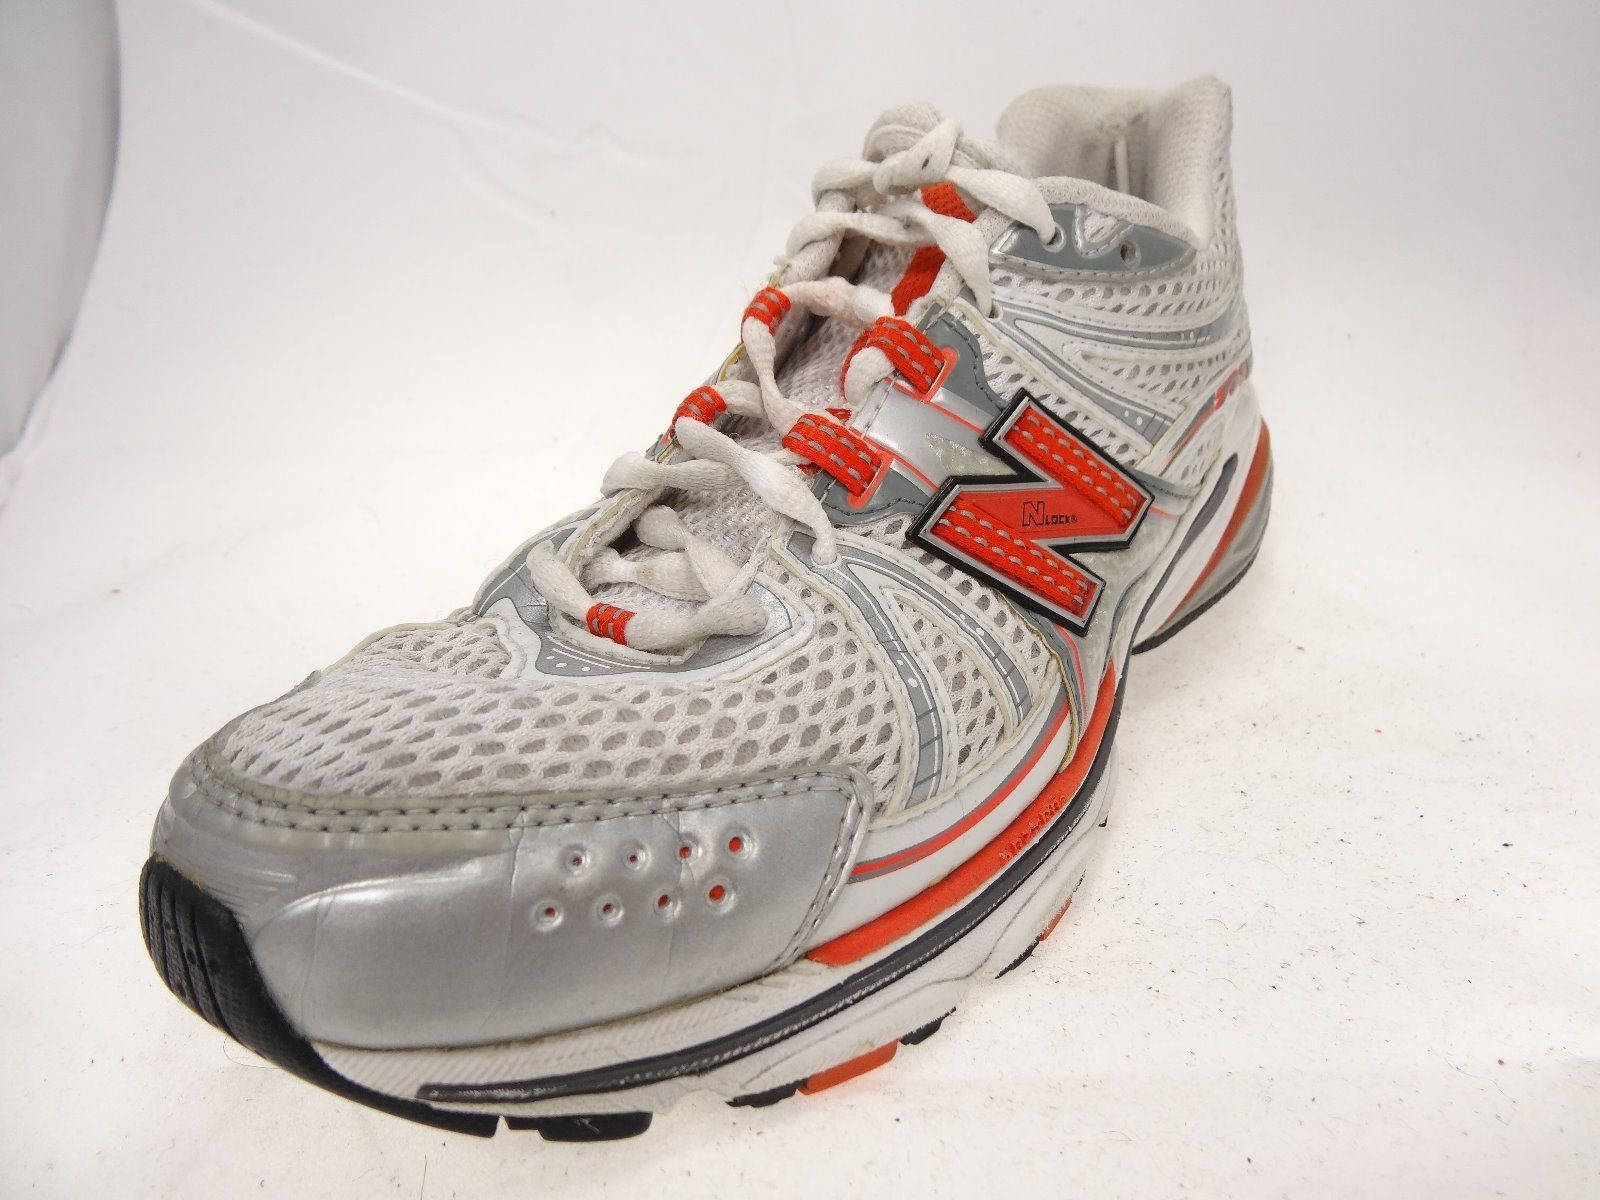 b89e63be7f974 New Balance 769 Running Shoes, #WR769ST, and 50 similar items. S l1600